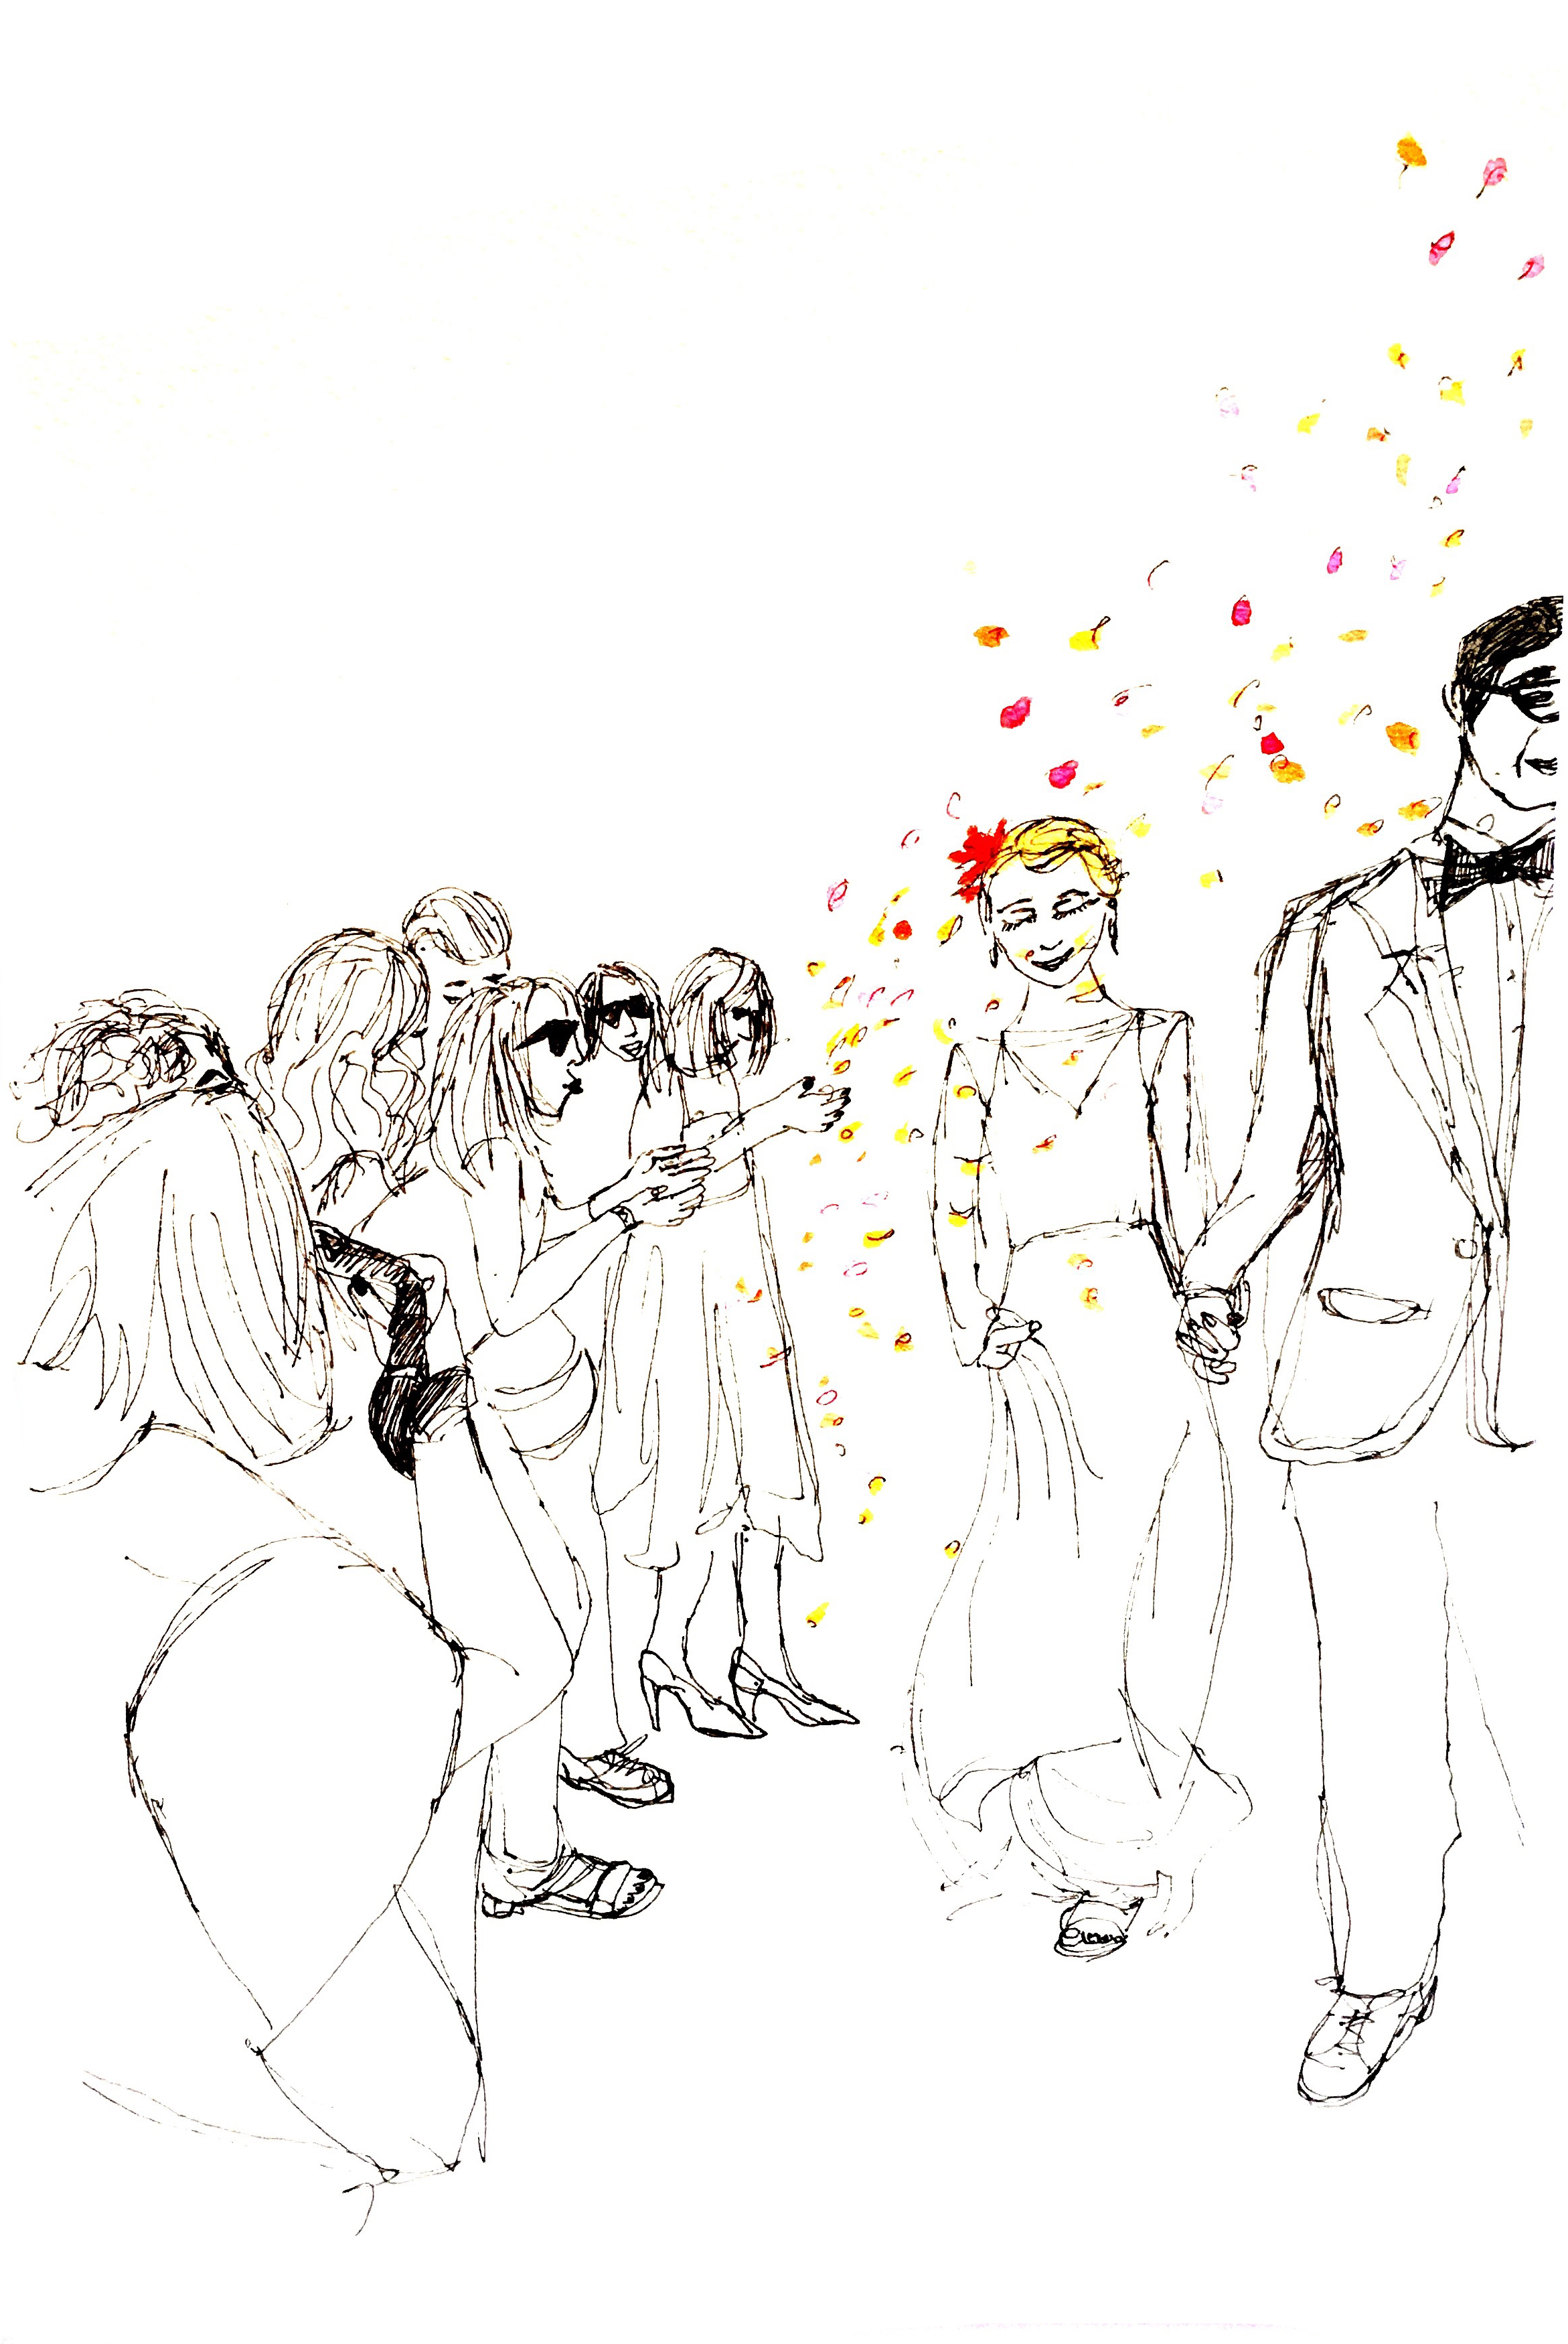 House of Love Illustration Live Wedding Artist Illustrator 00002.jpg